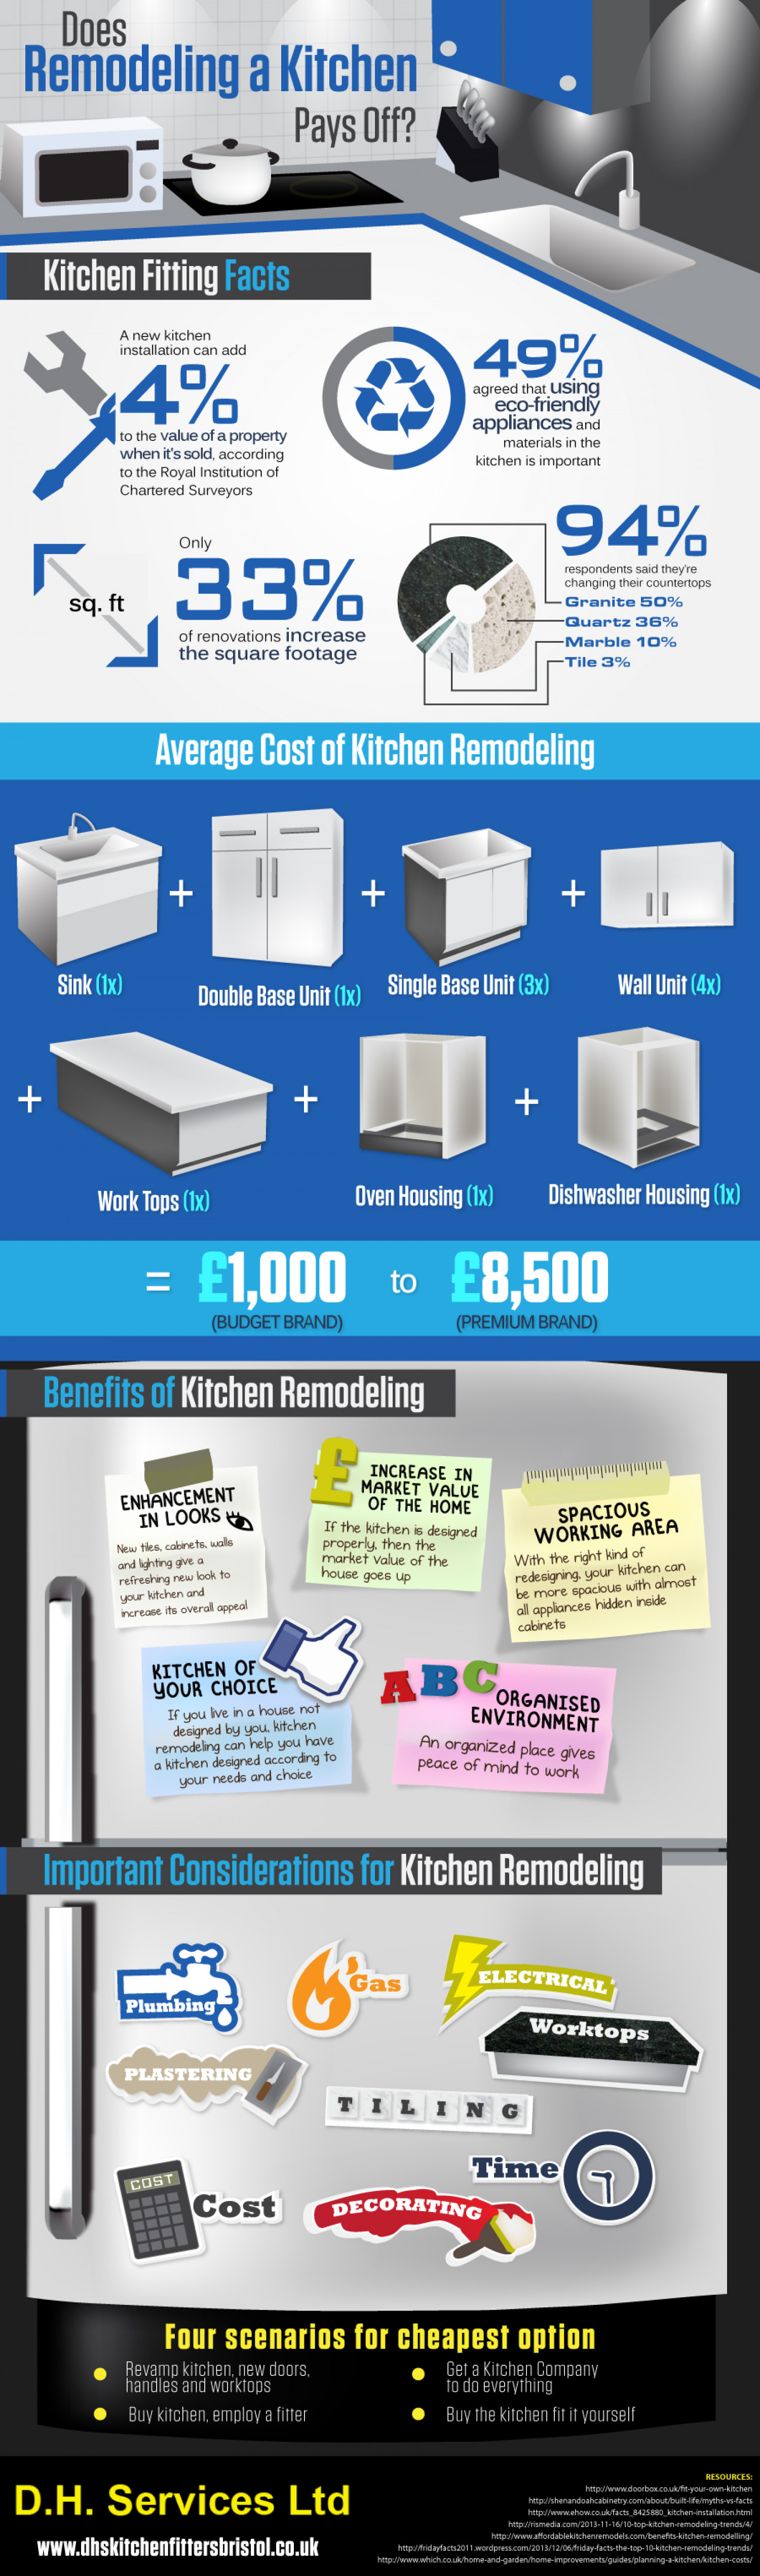 Does Remodeling a Kitchen Pays Off? Infographic